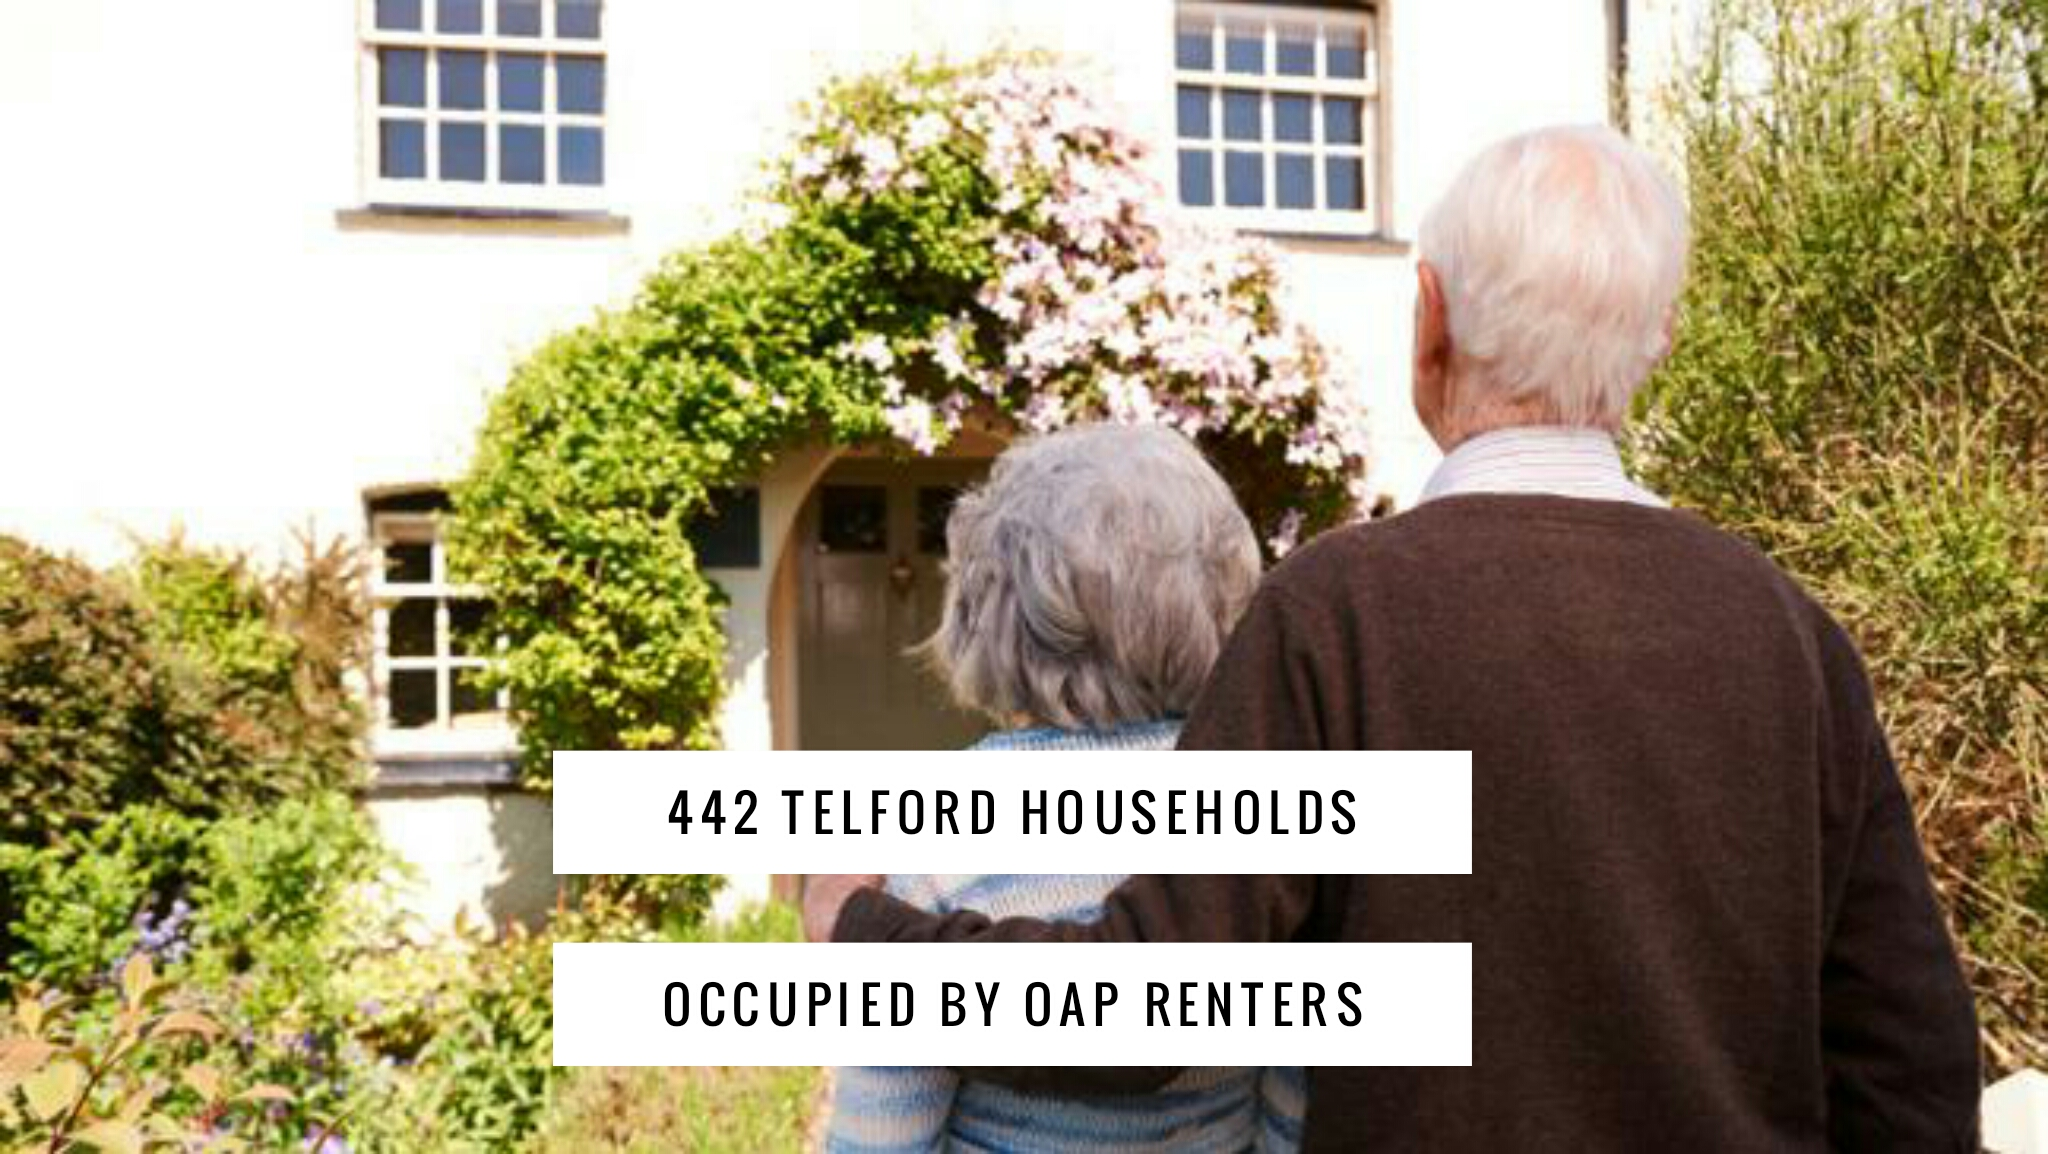 442 Telford Households Occupied by OAP Renters